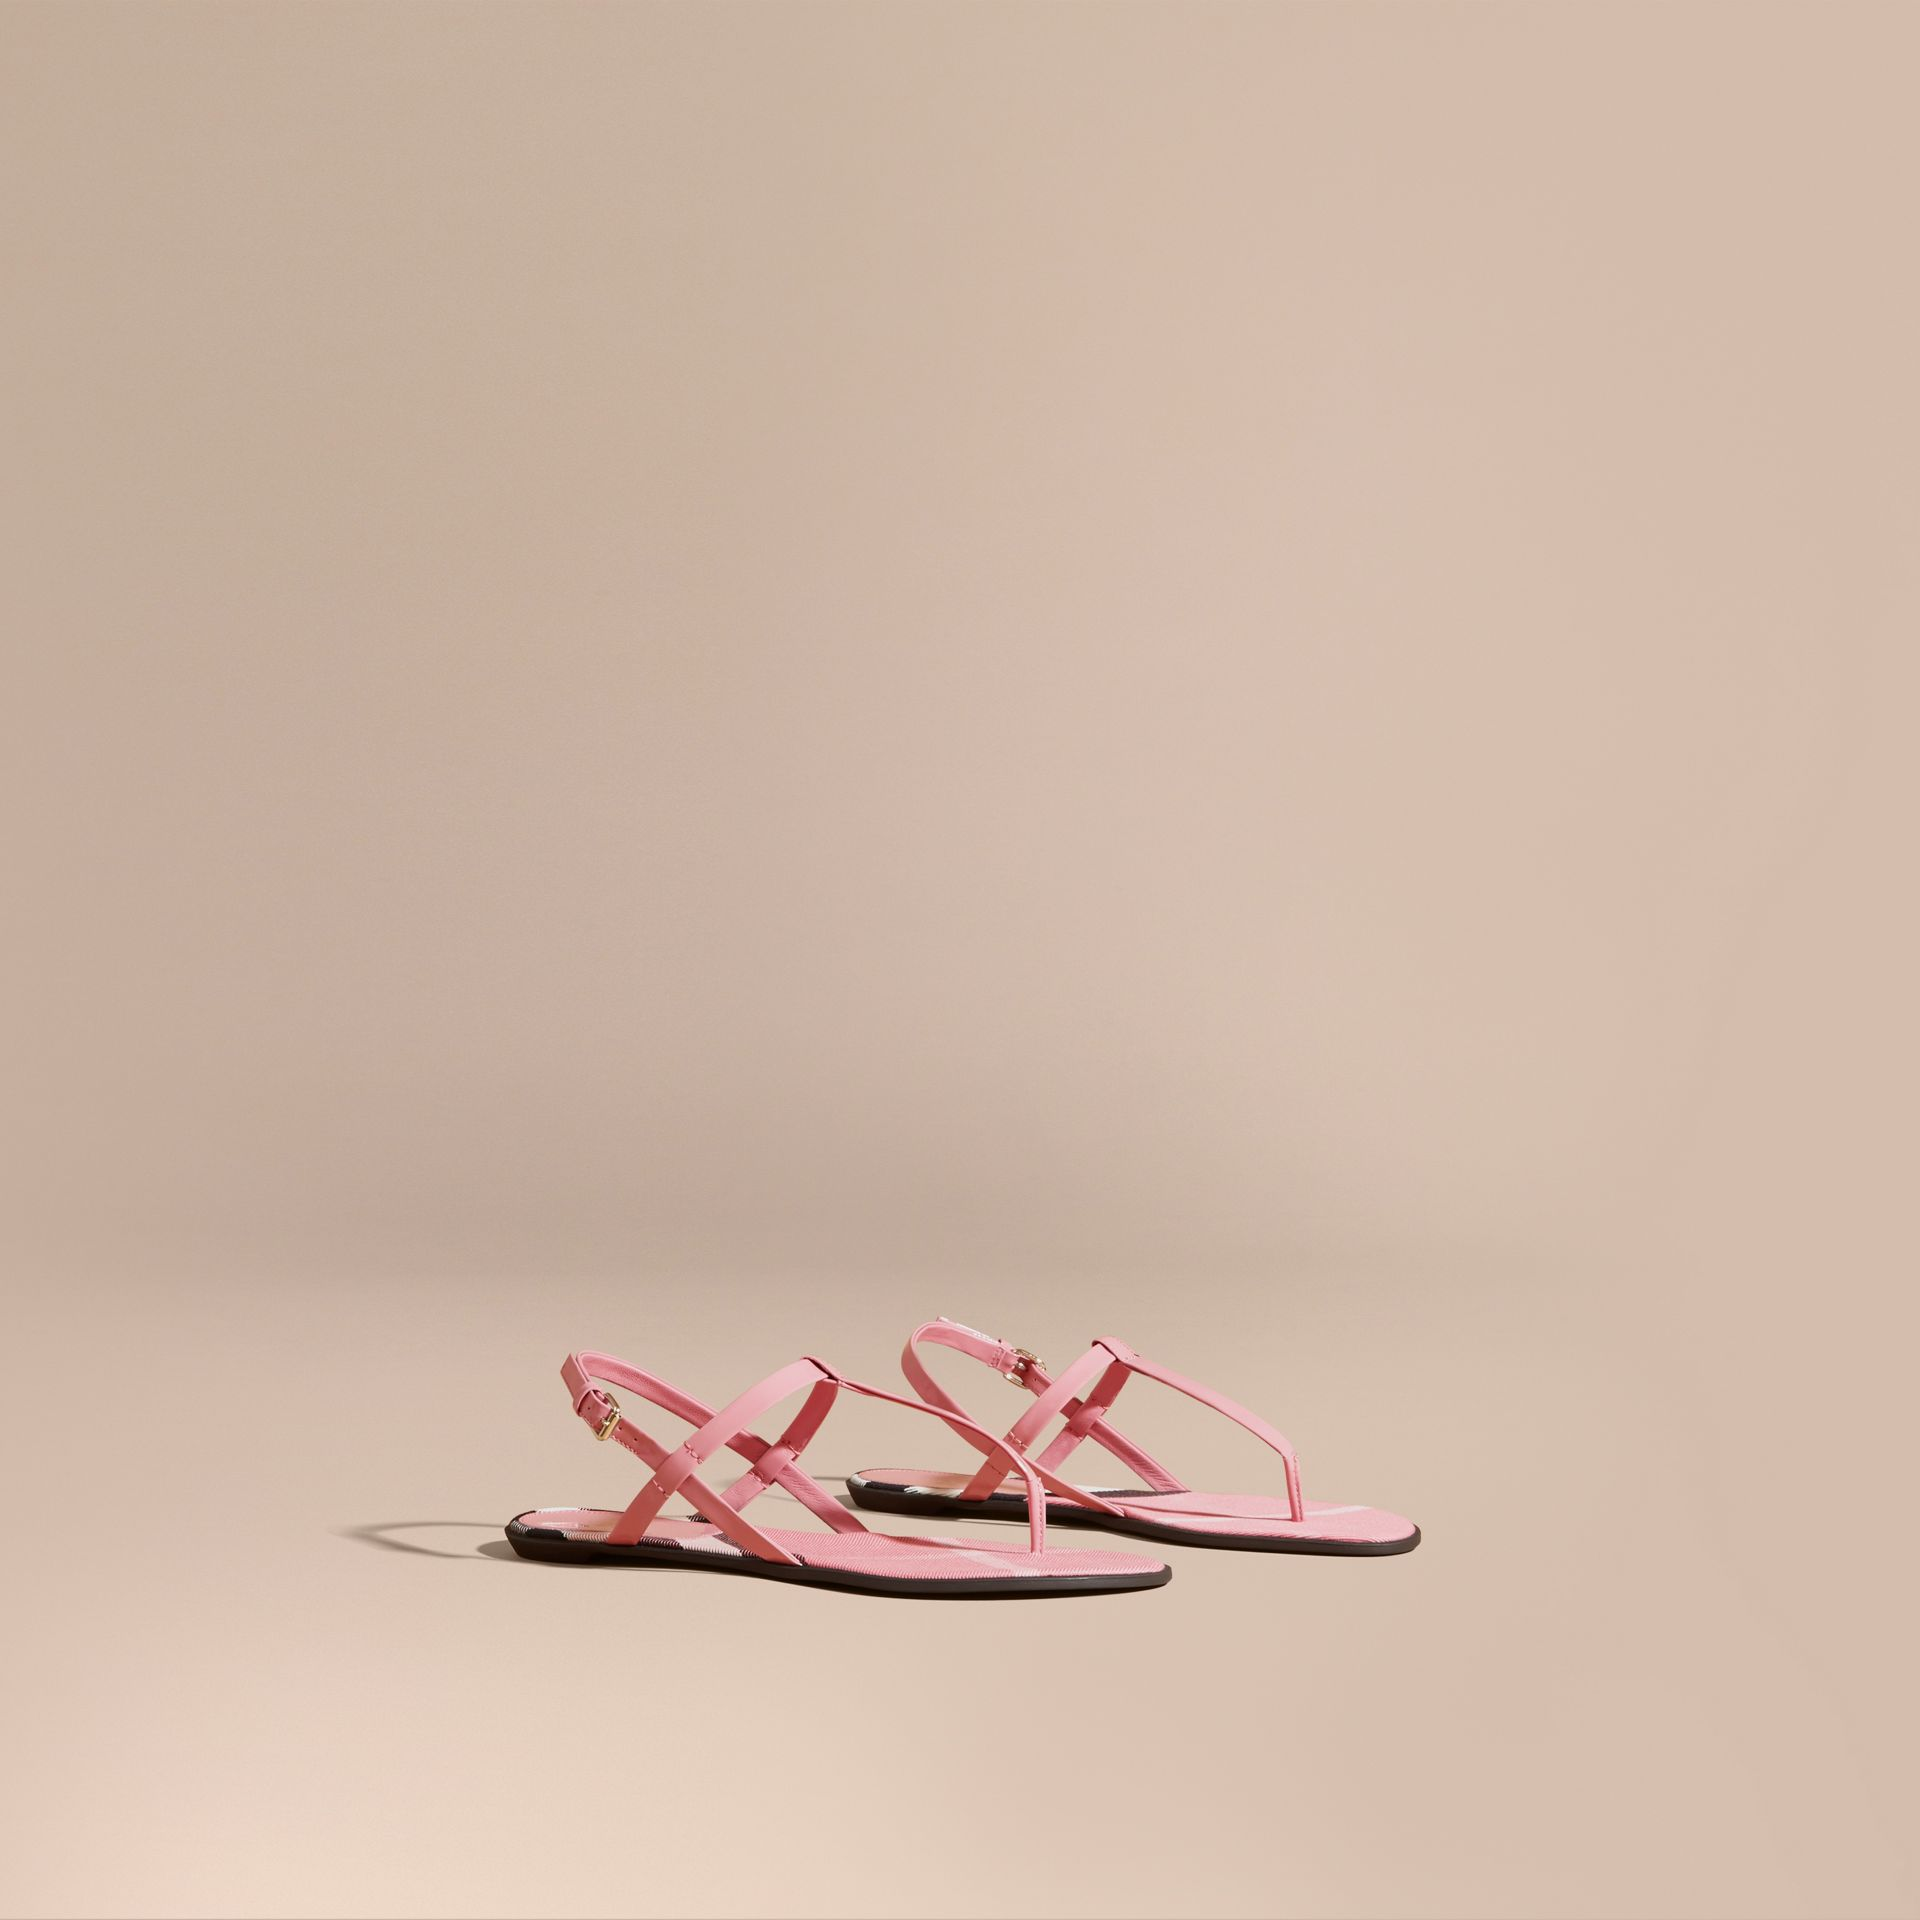 House Check-lined Leather Sandals Berry Pink - gallery image 1